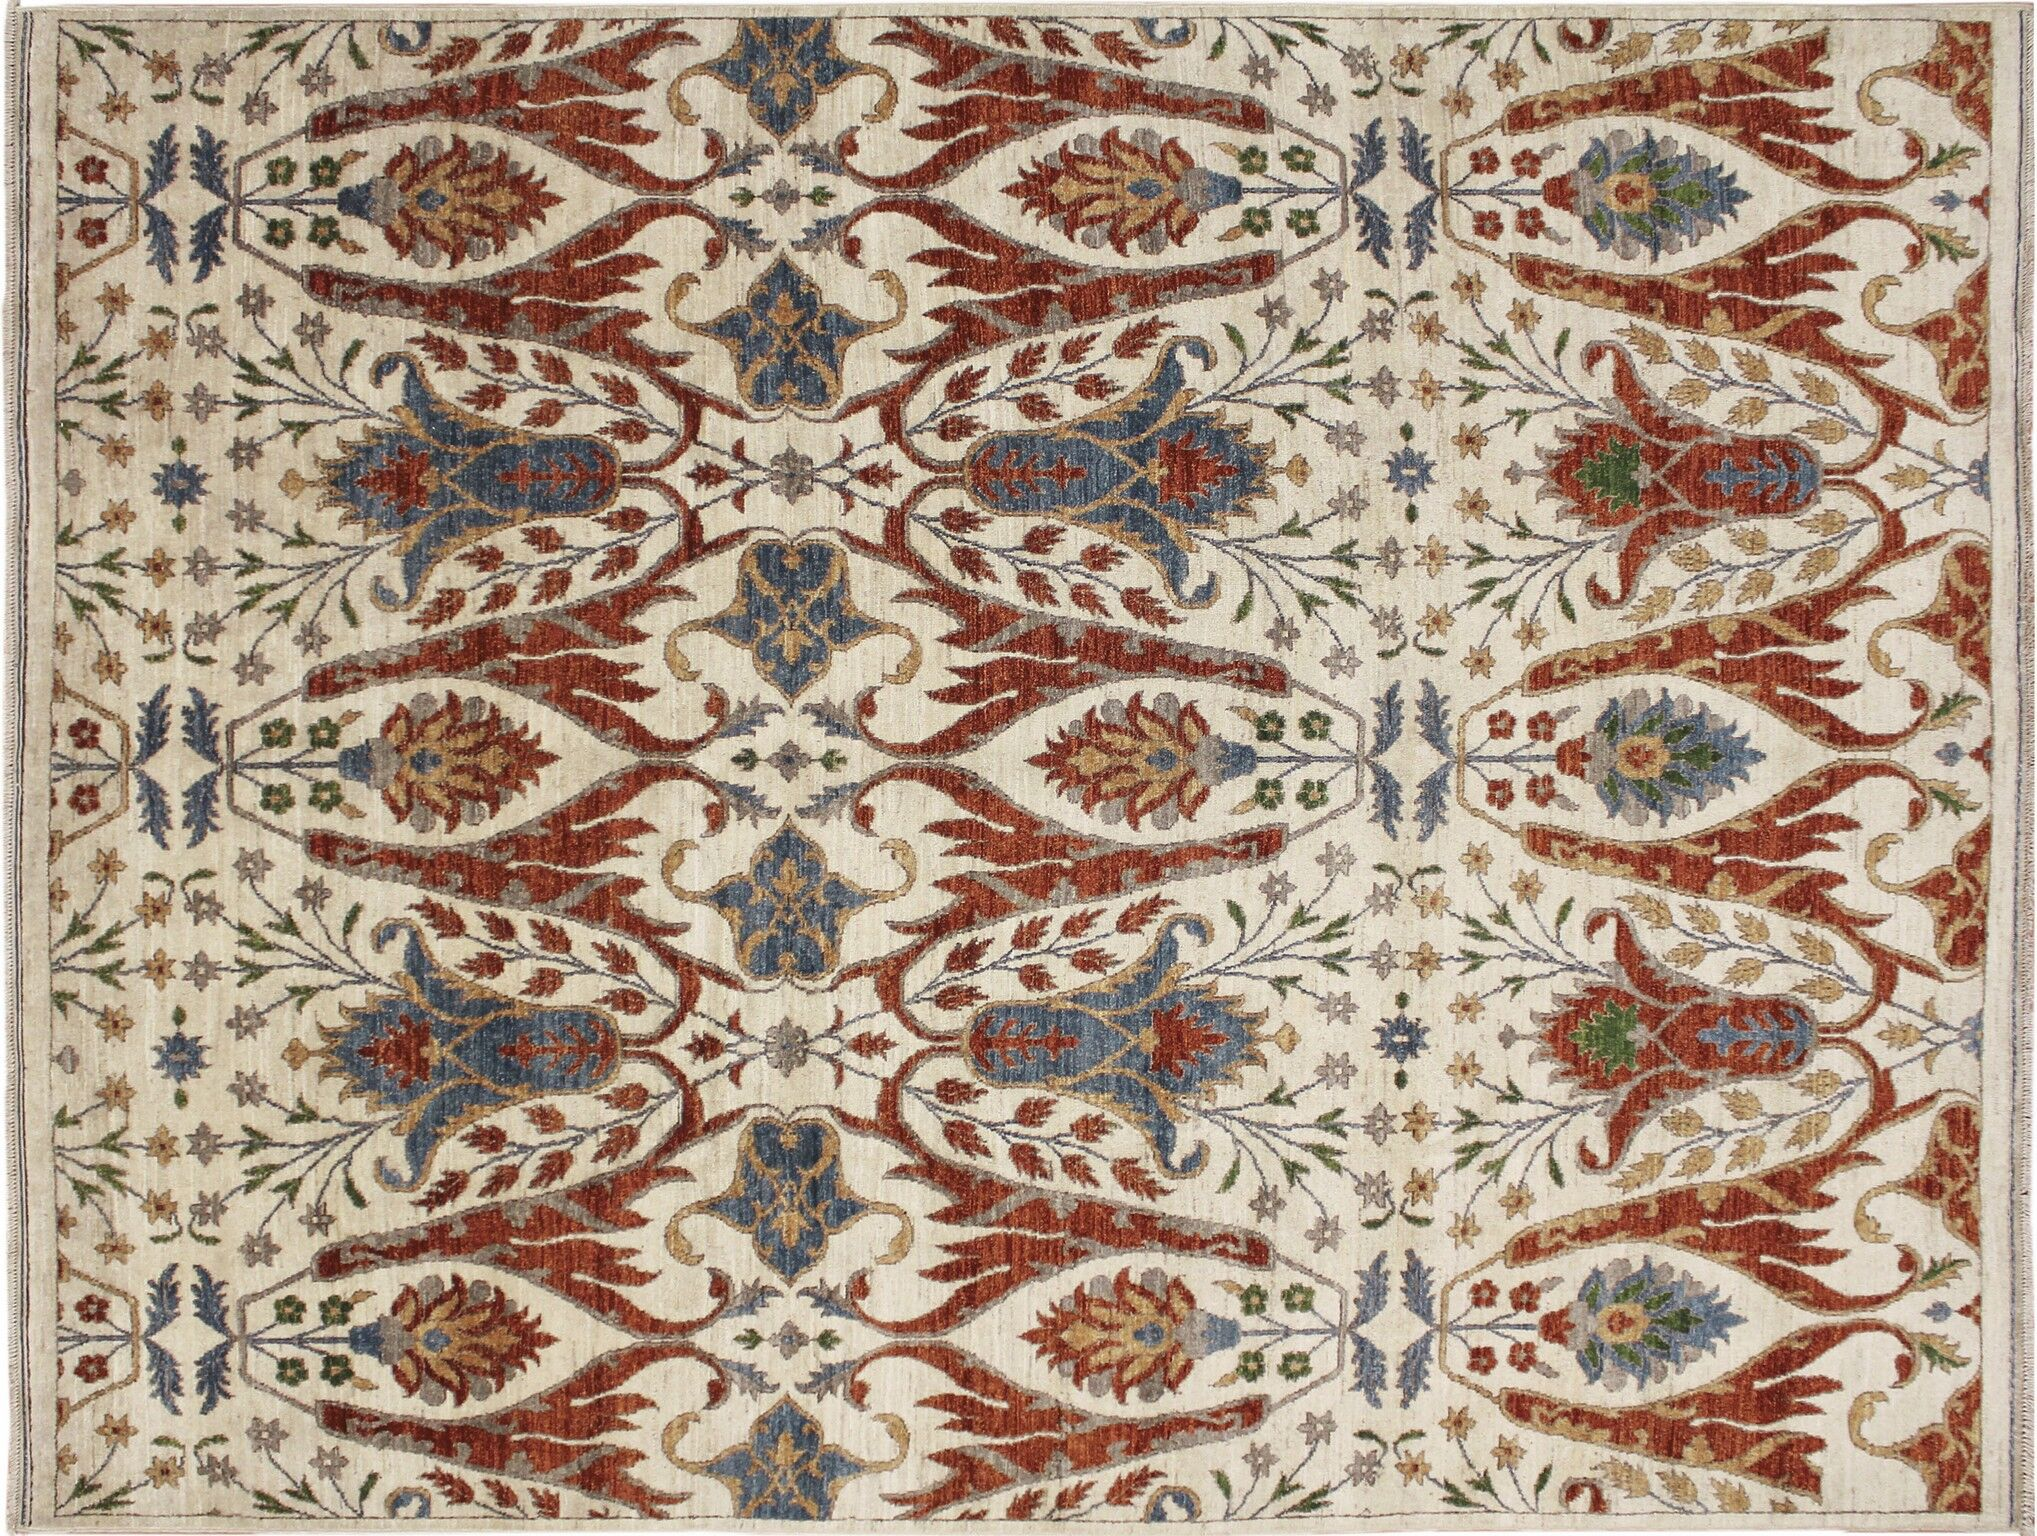 Abbotsford Fine Hand-Knotted Ivory Area Rug Rug Size: Rectangle 6'2